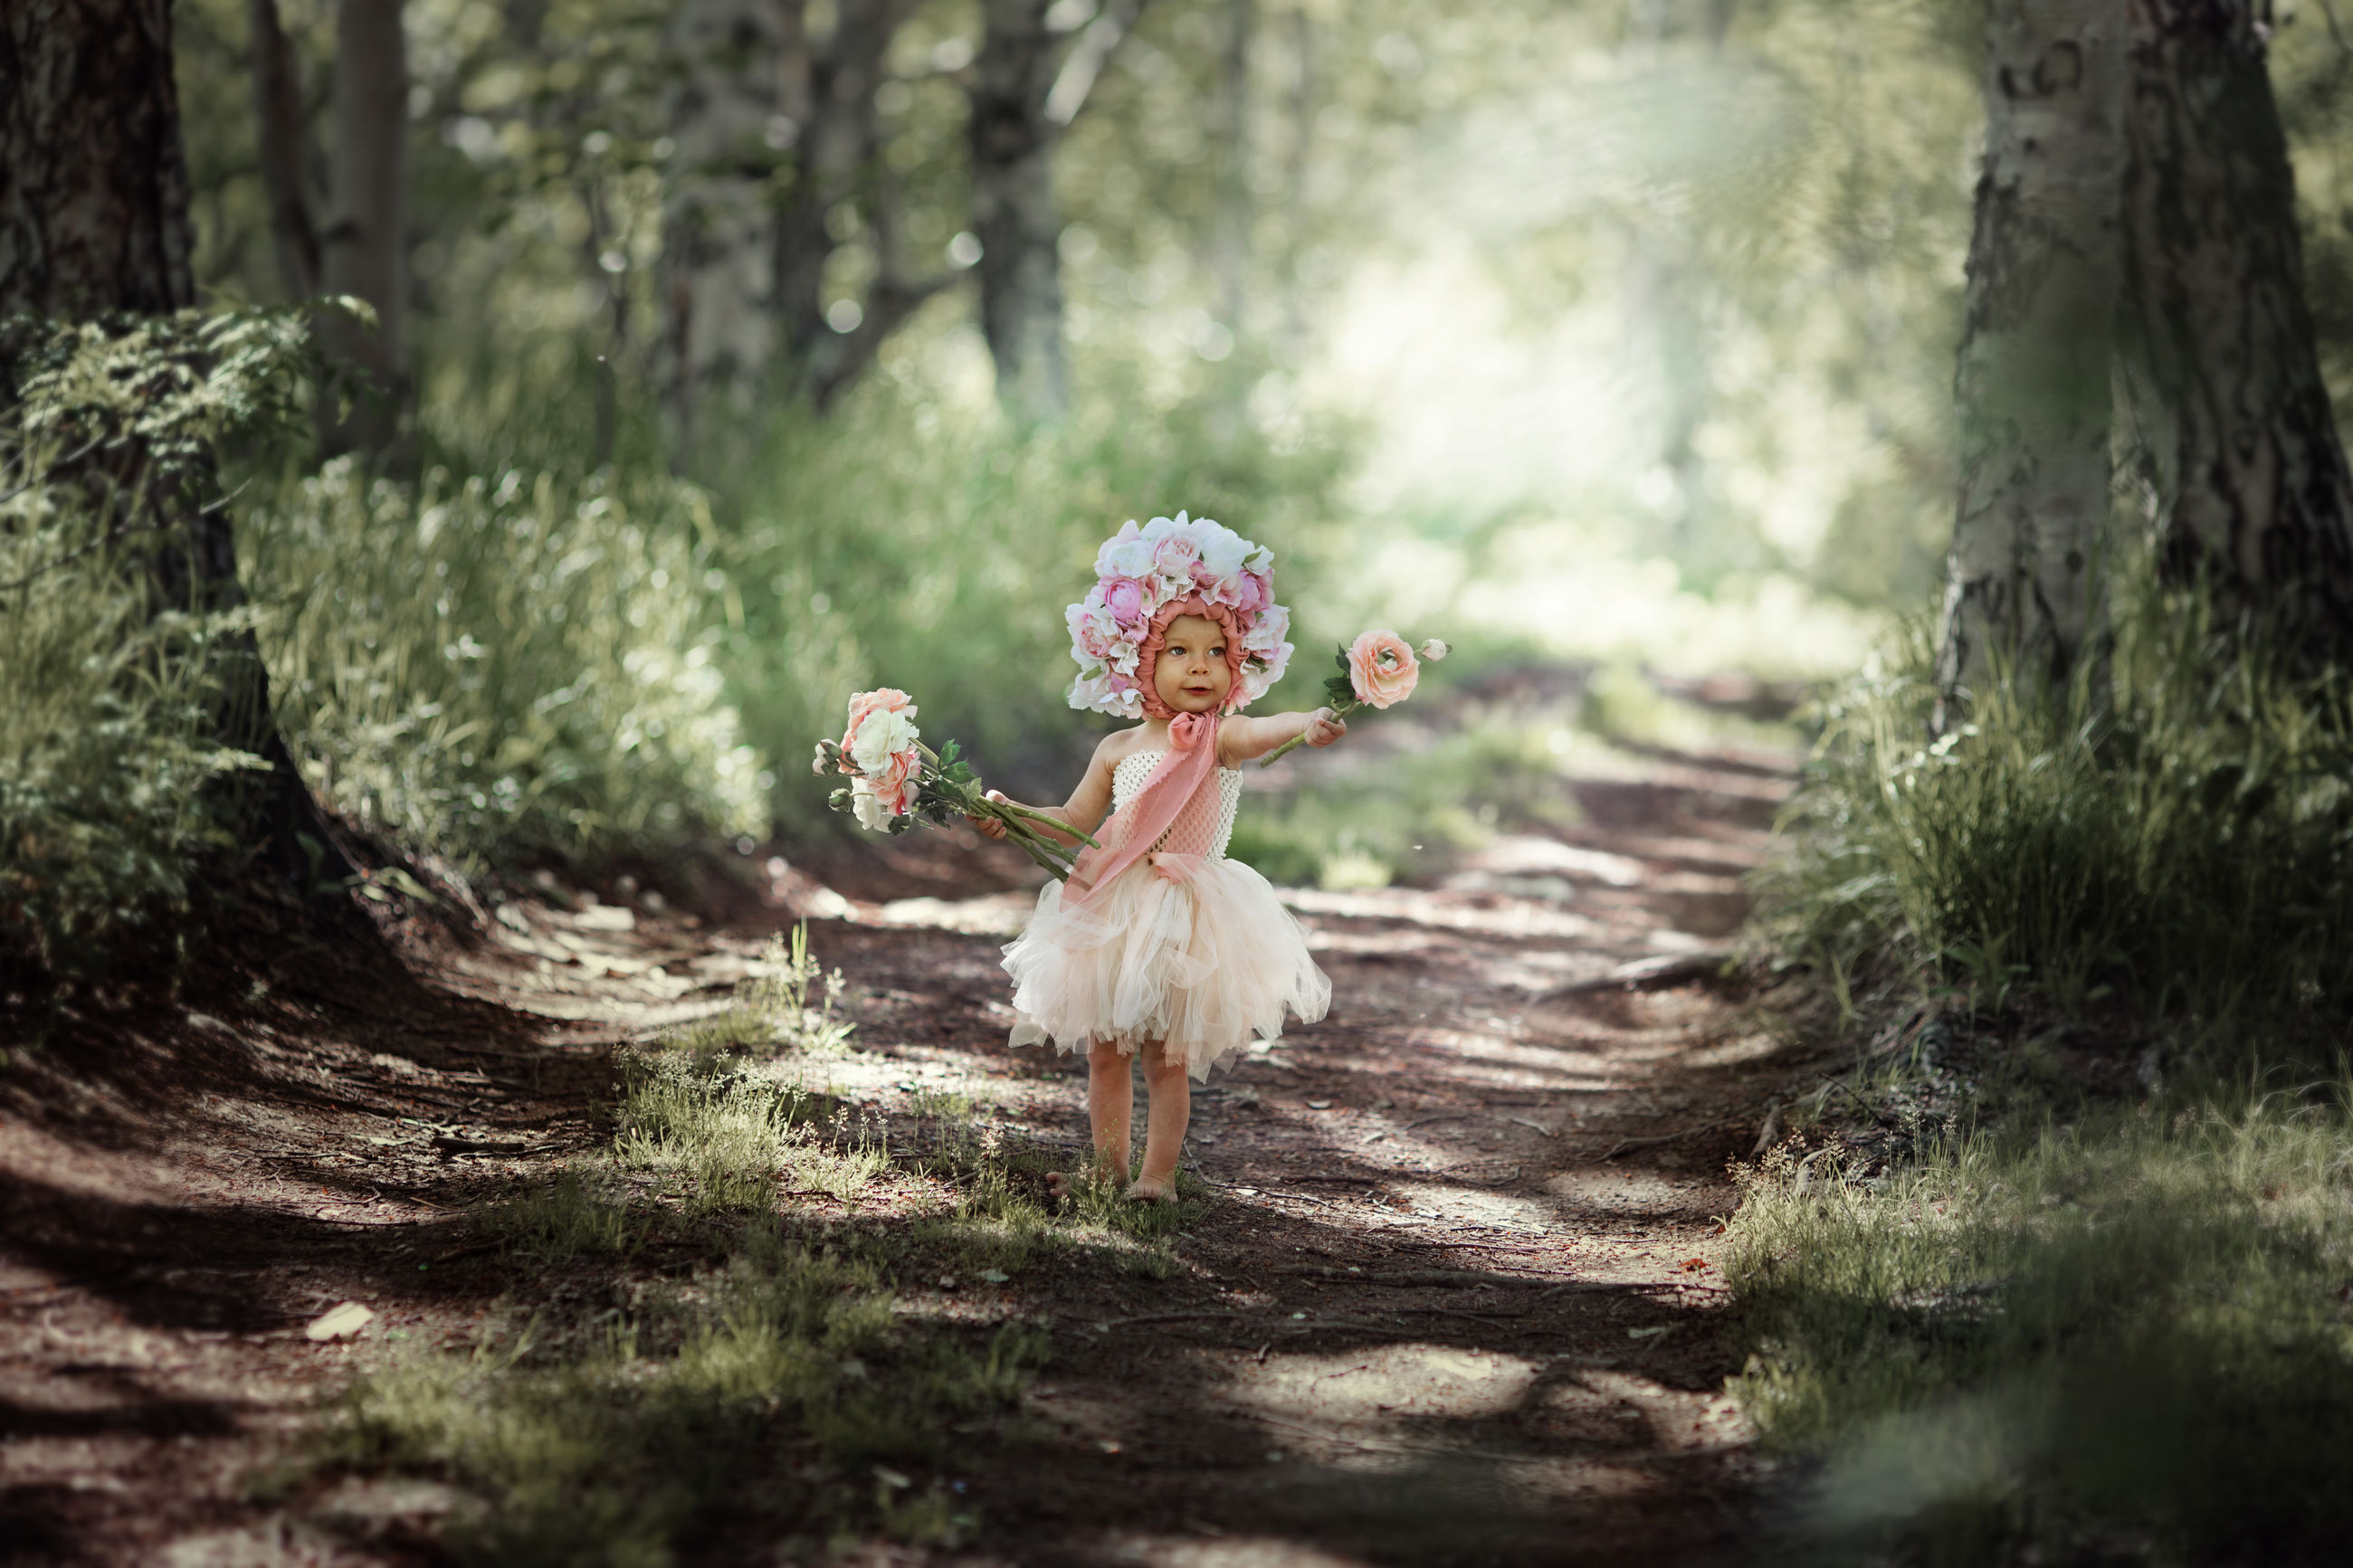 plant, childhood, child, tree, innocence, nature, one person, offspring, forest, full length, selective focus, emotion, day, dress, clothing, land, celebration, outdoors, bouquet, flower arrangement